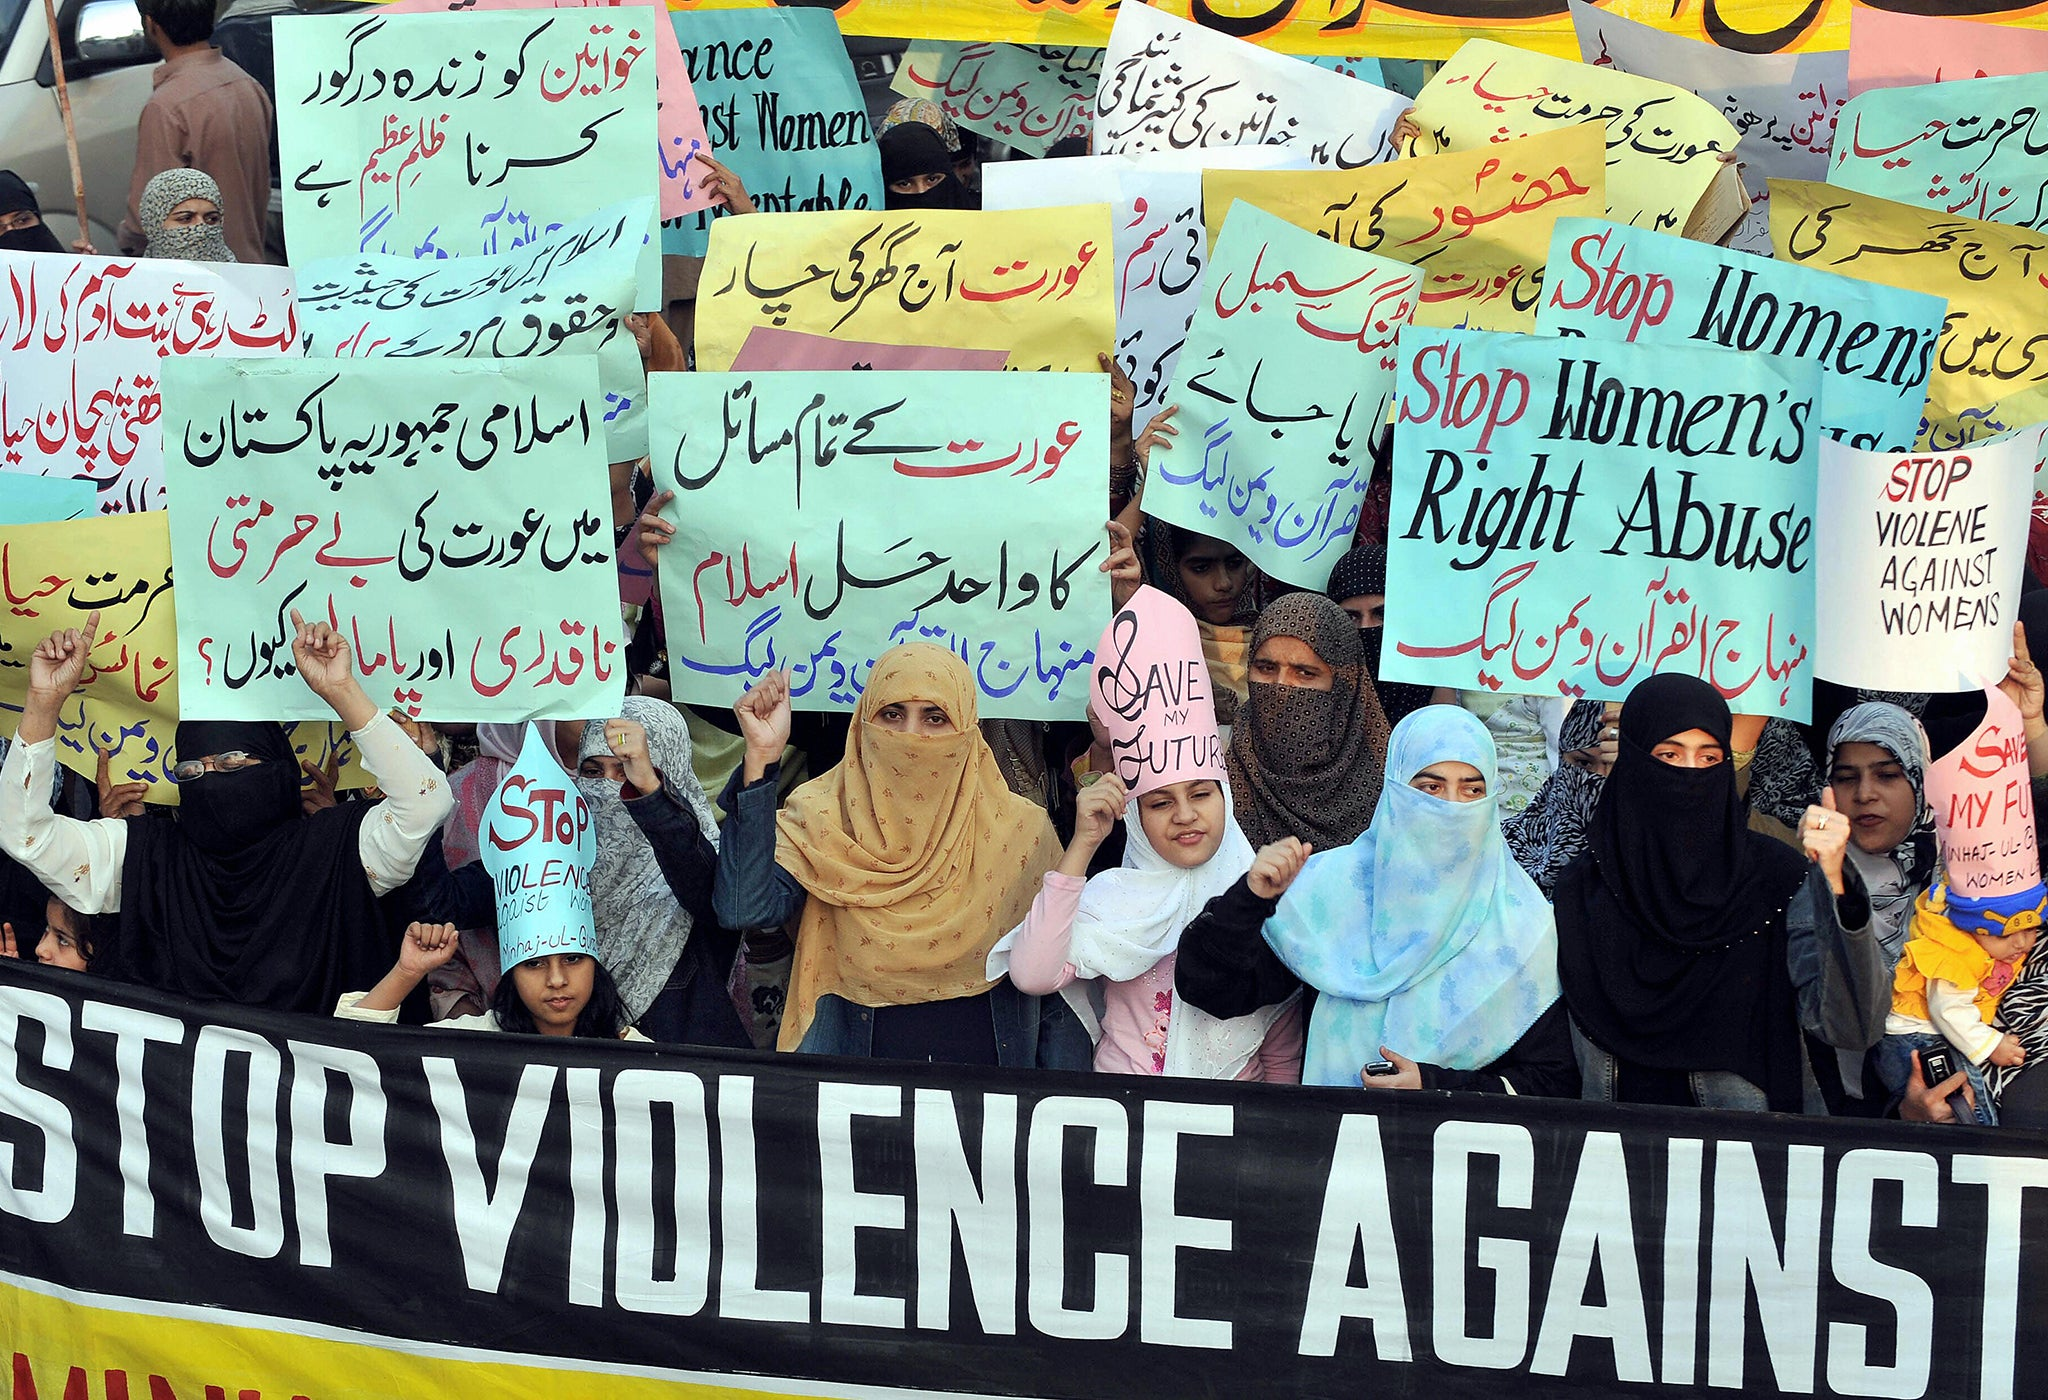 Abn Honour Killings In Islam: Pakistani Brothers 'gouge Sister's Eyes And Cut Off Feet